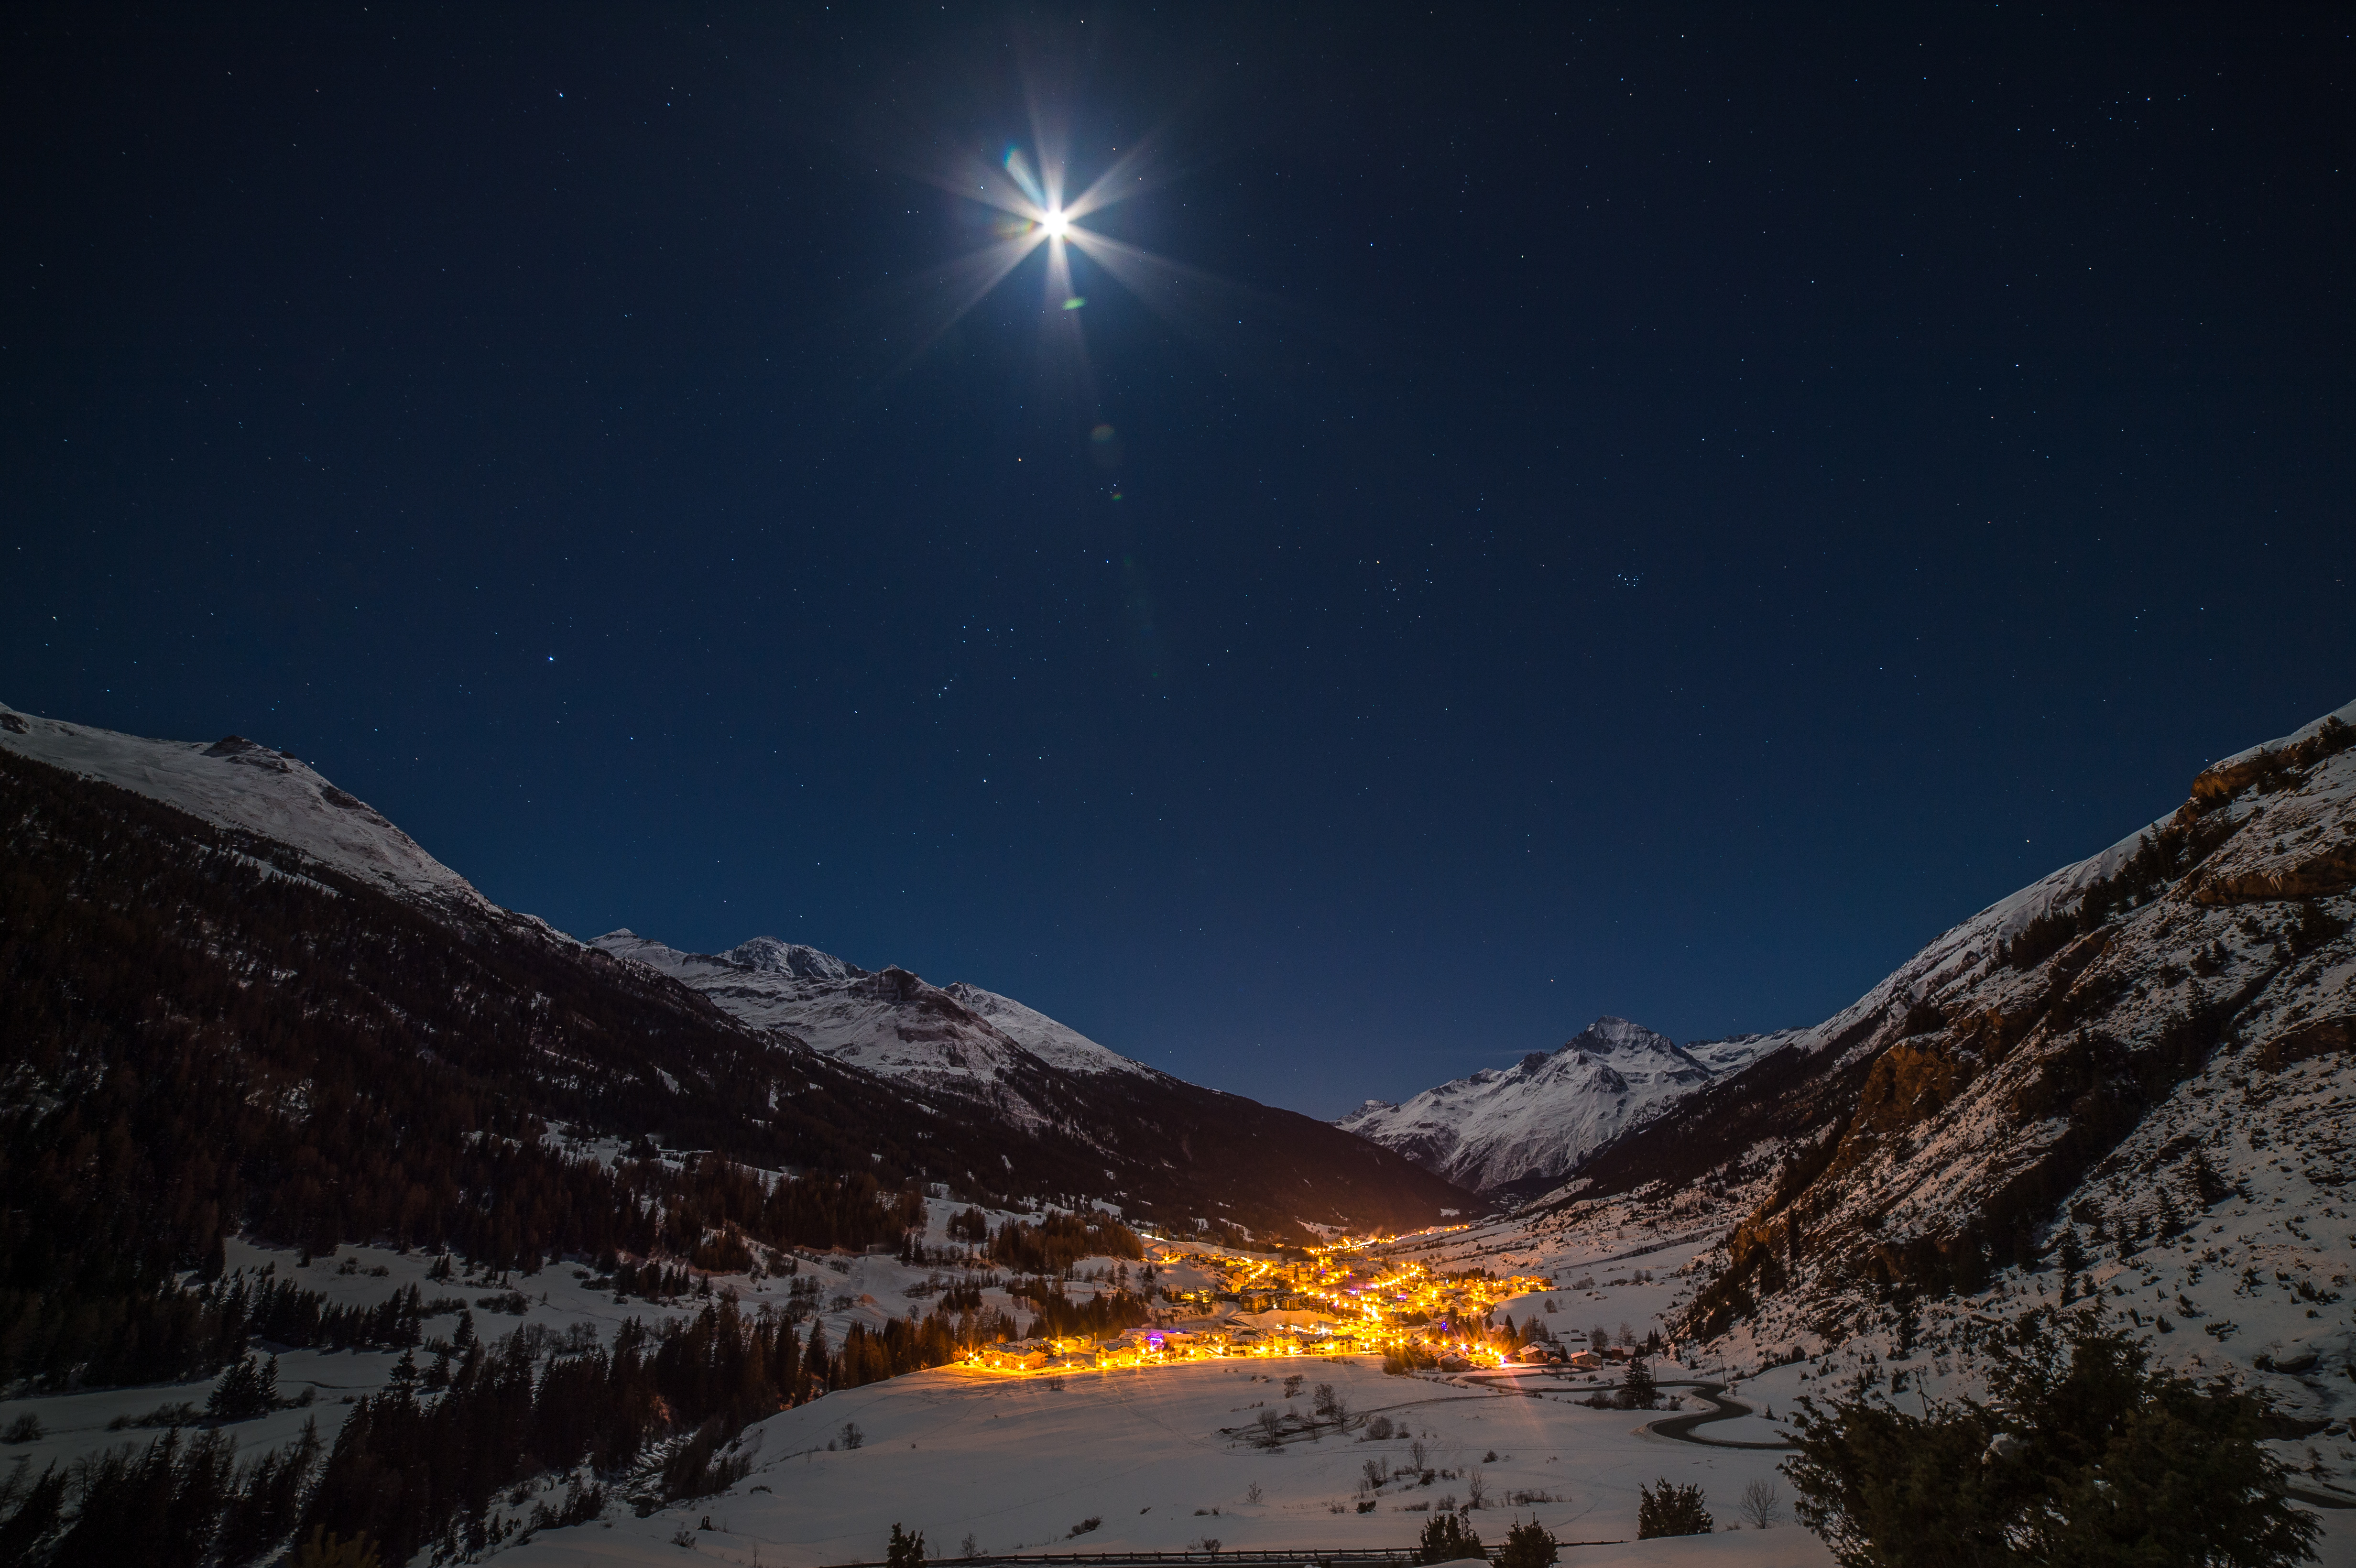 Val Cenis at night